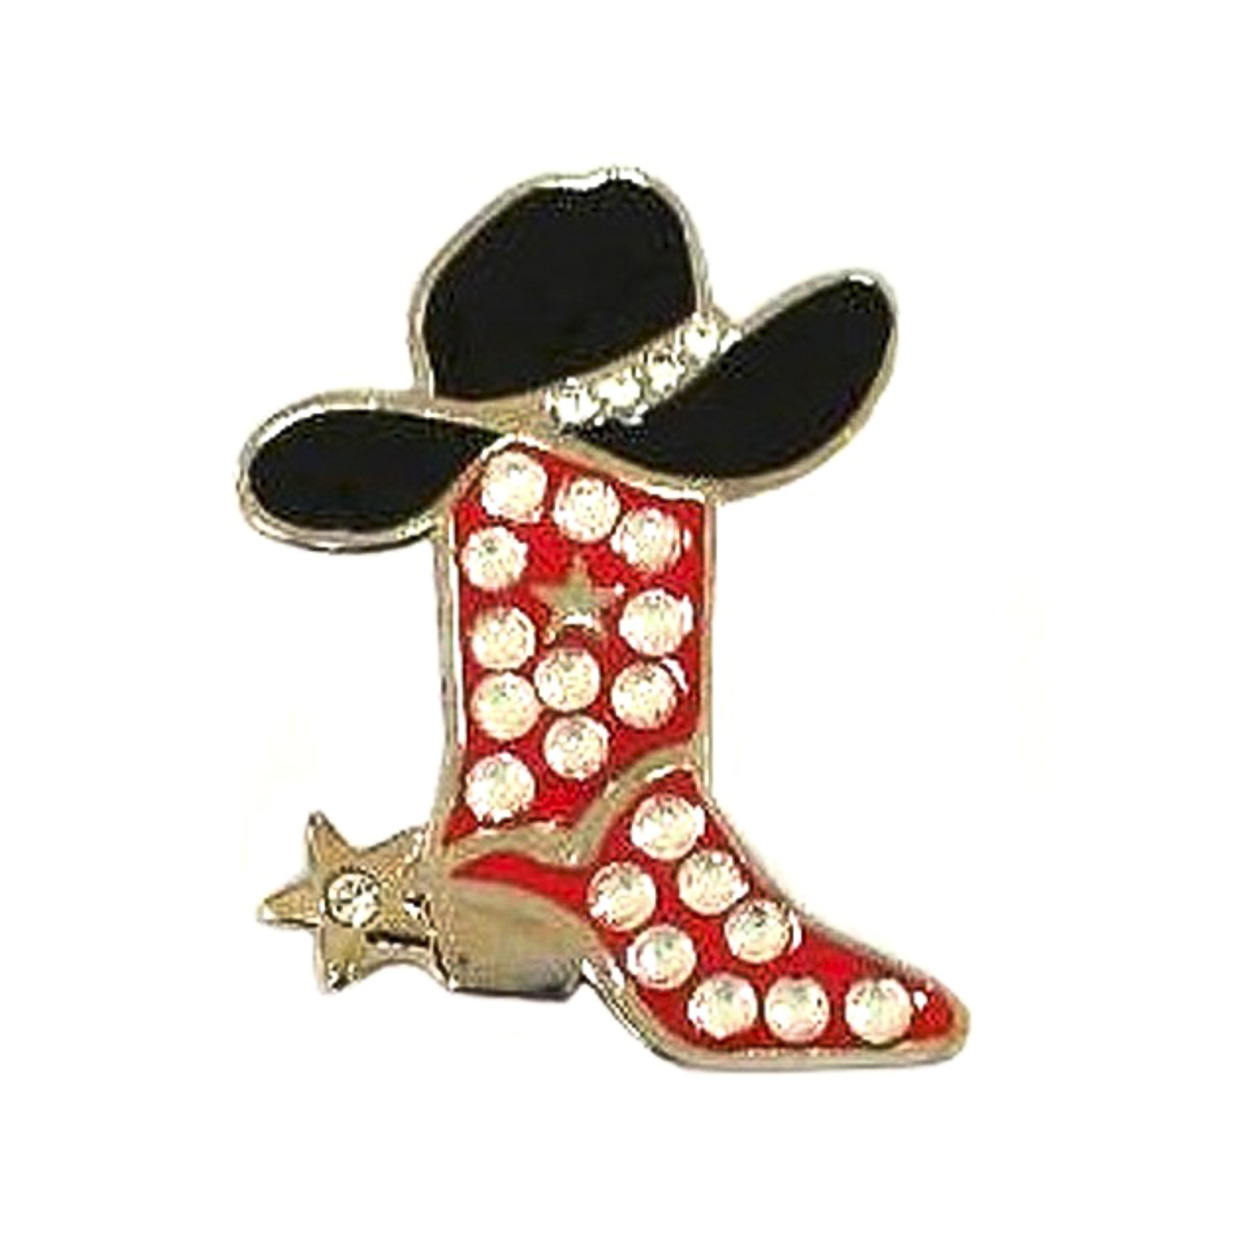 142. Cowgirl Boot Red